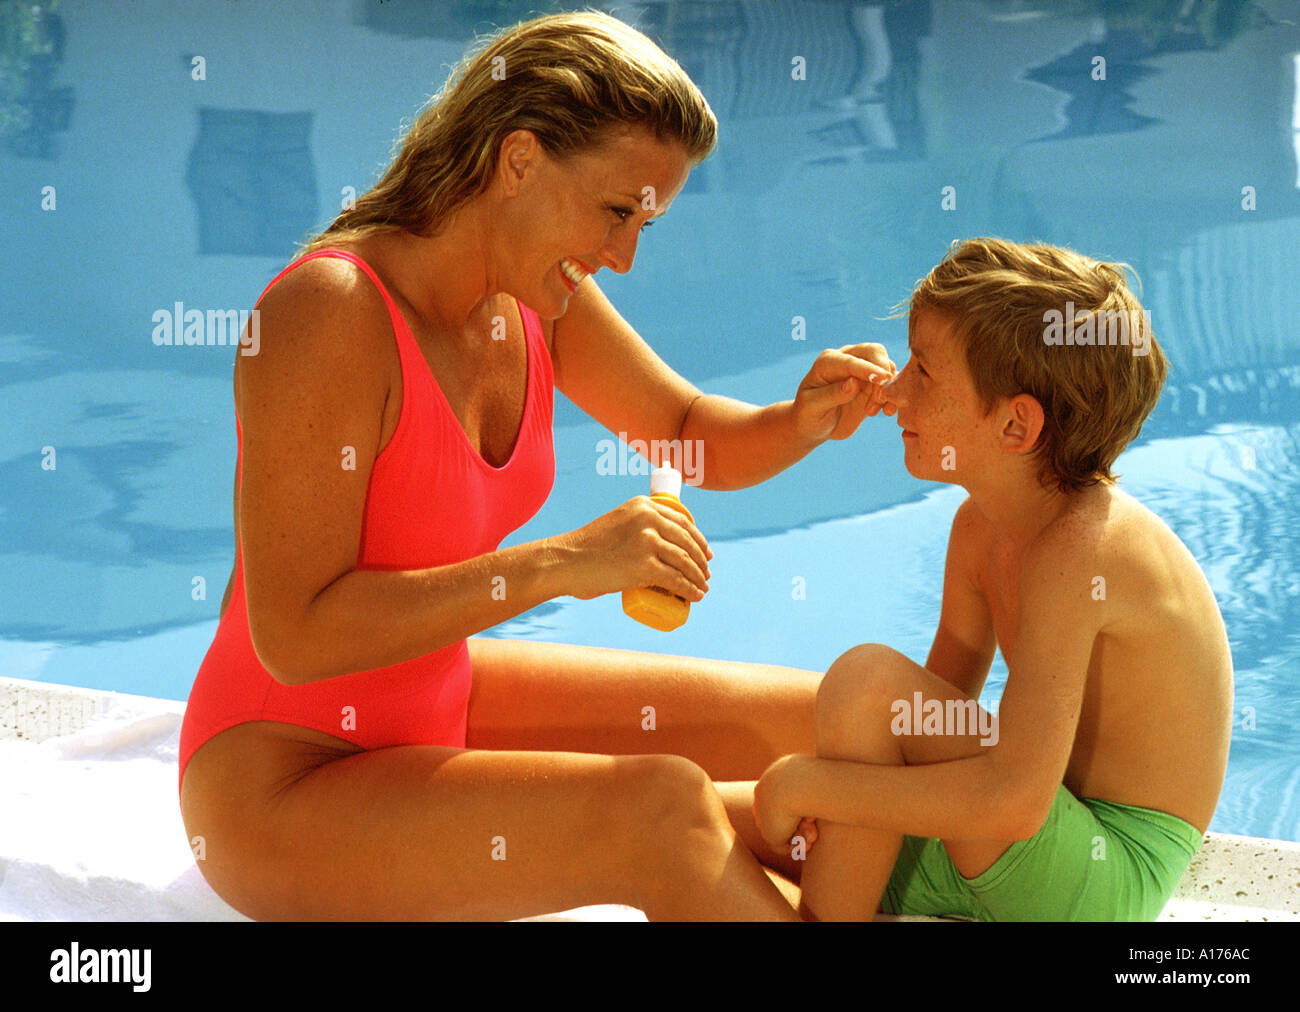 Mother and son naked